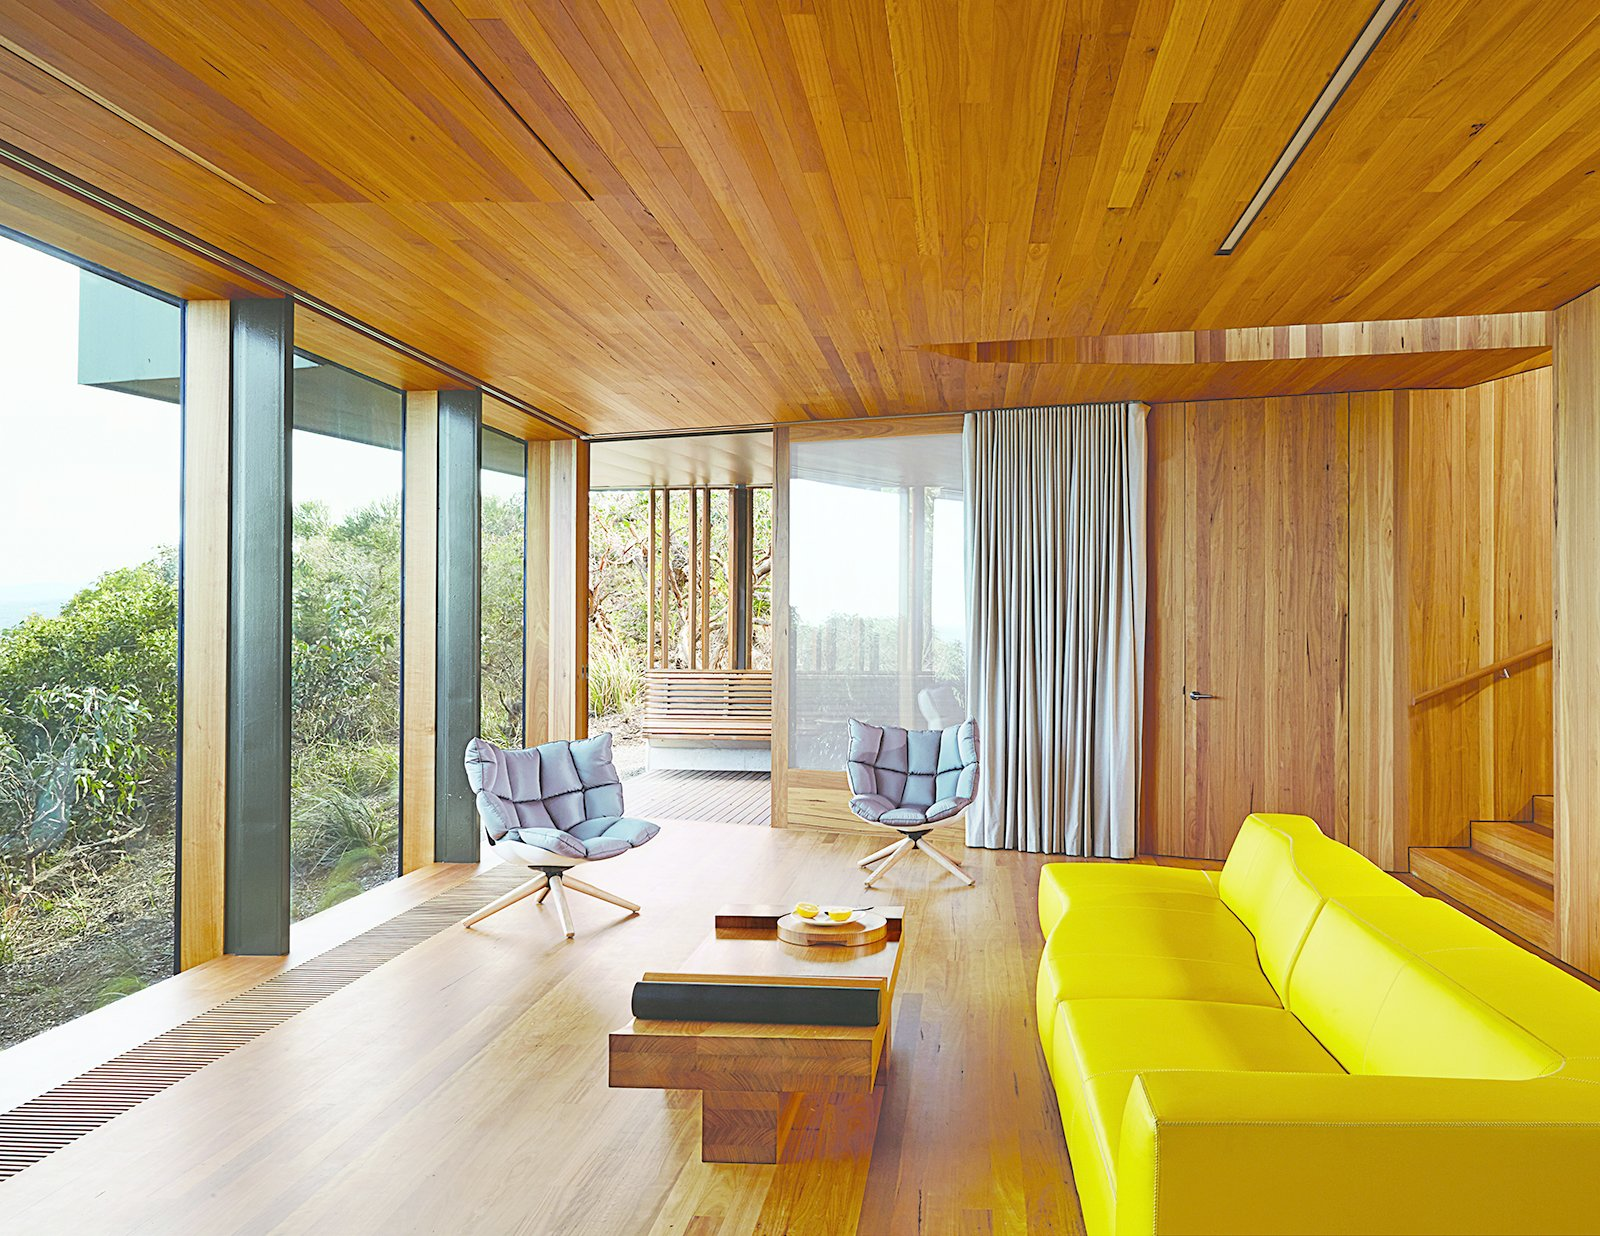 Refusing to fixate on the seascape at the expense of other views, Wardle oriented the living room to a lush grove of trees. A yellow Bend sofa and two Husk chairs, both by Patricia Urquiola for B&B Italia, add splashes of color.  Photo 3 of 9 in A Eucalyptus-Lined Oceanfront Home in Australia